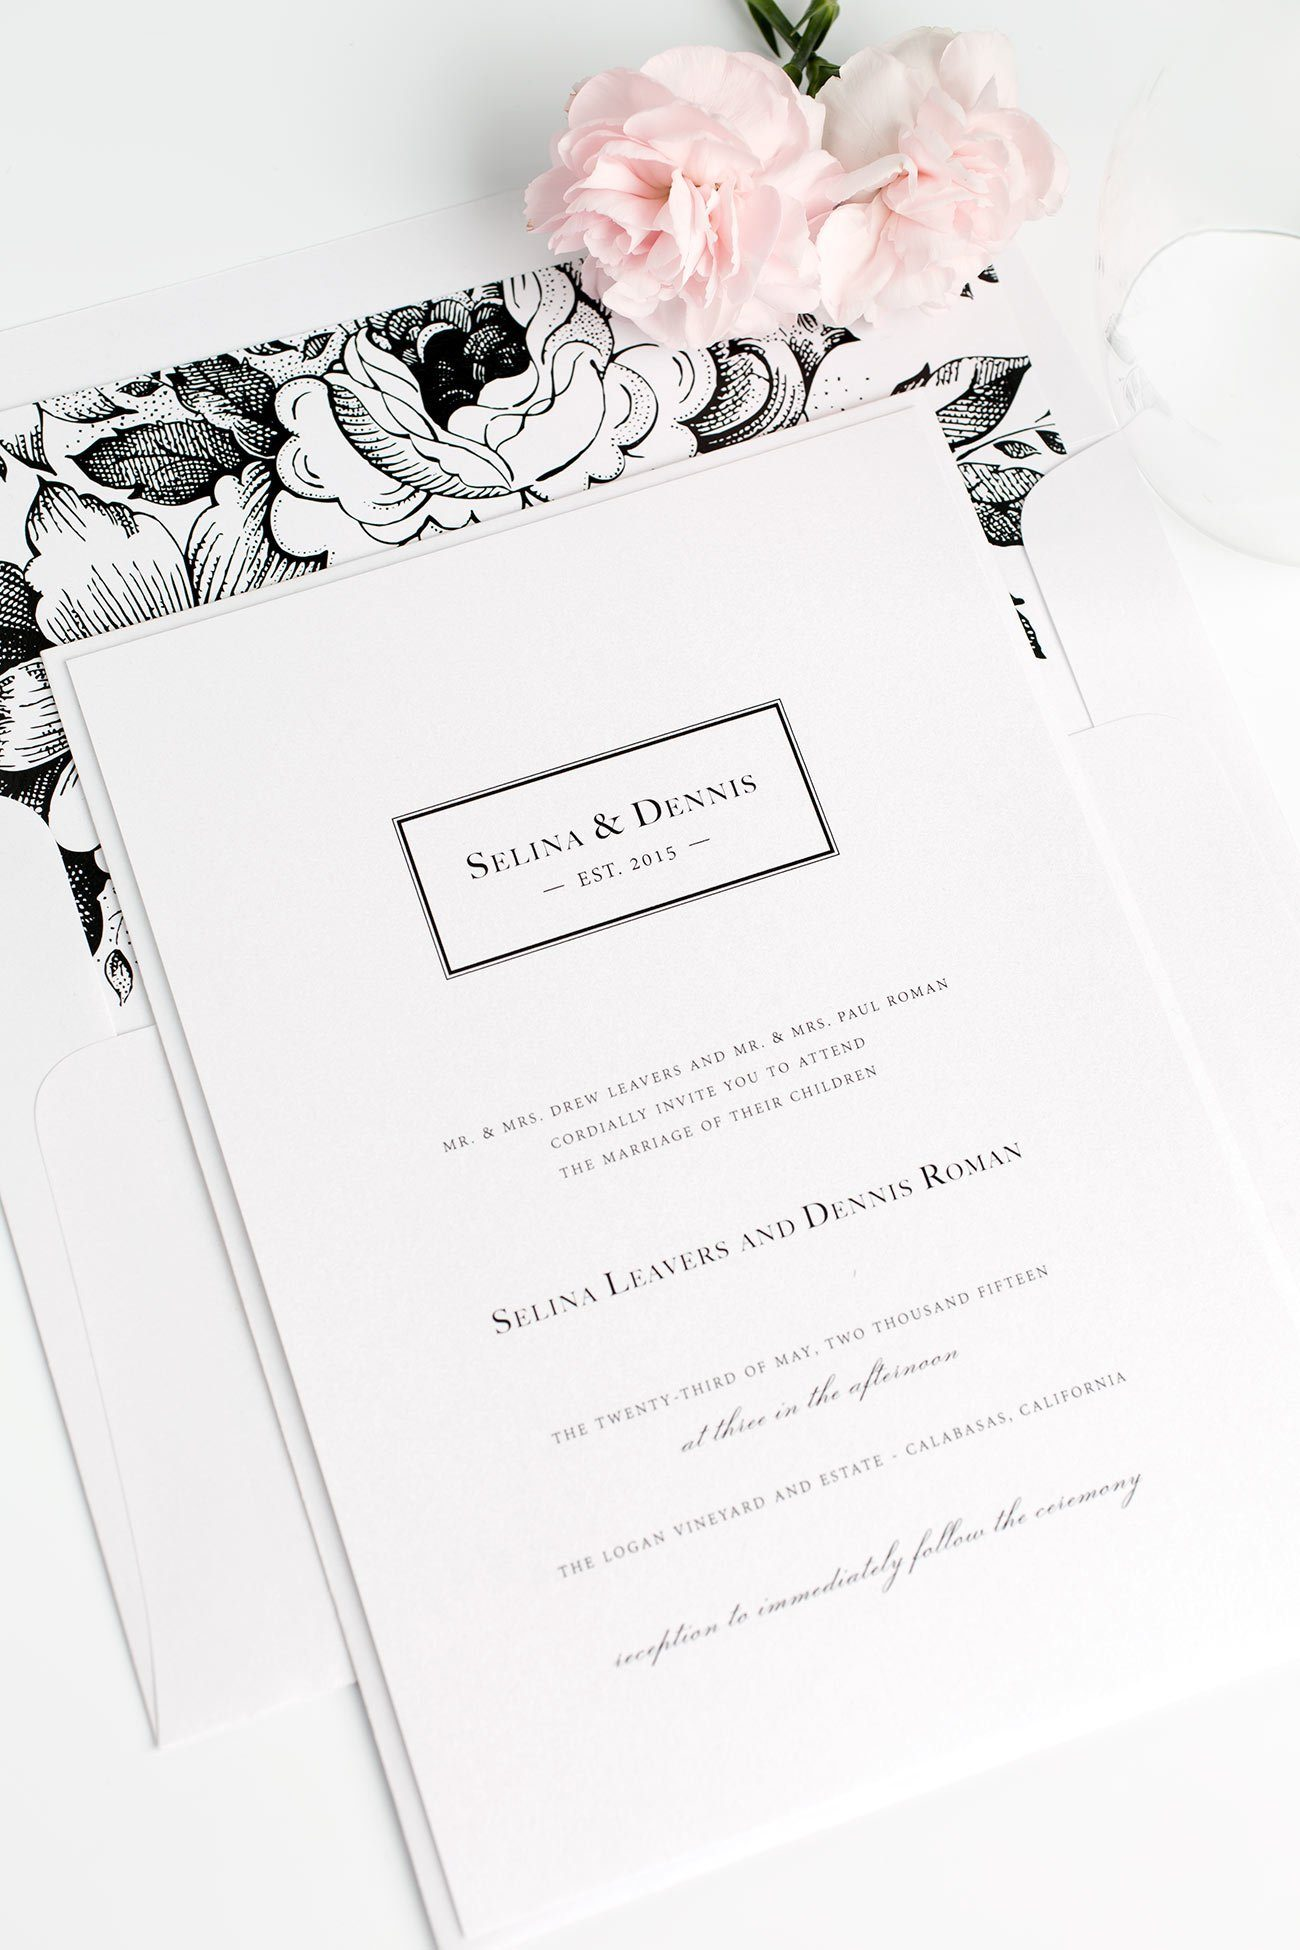 Romantic Monogram Wedding Invitations with a Black and White Floral Envelope Liner